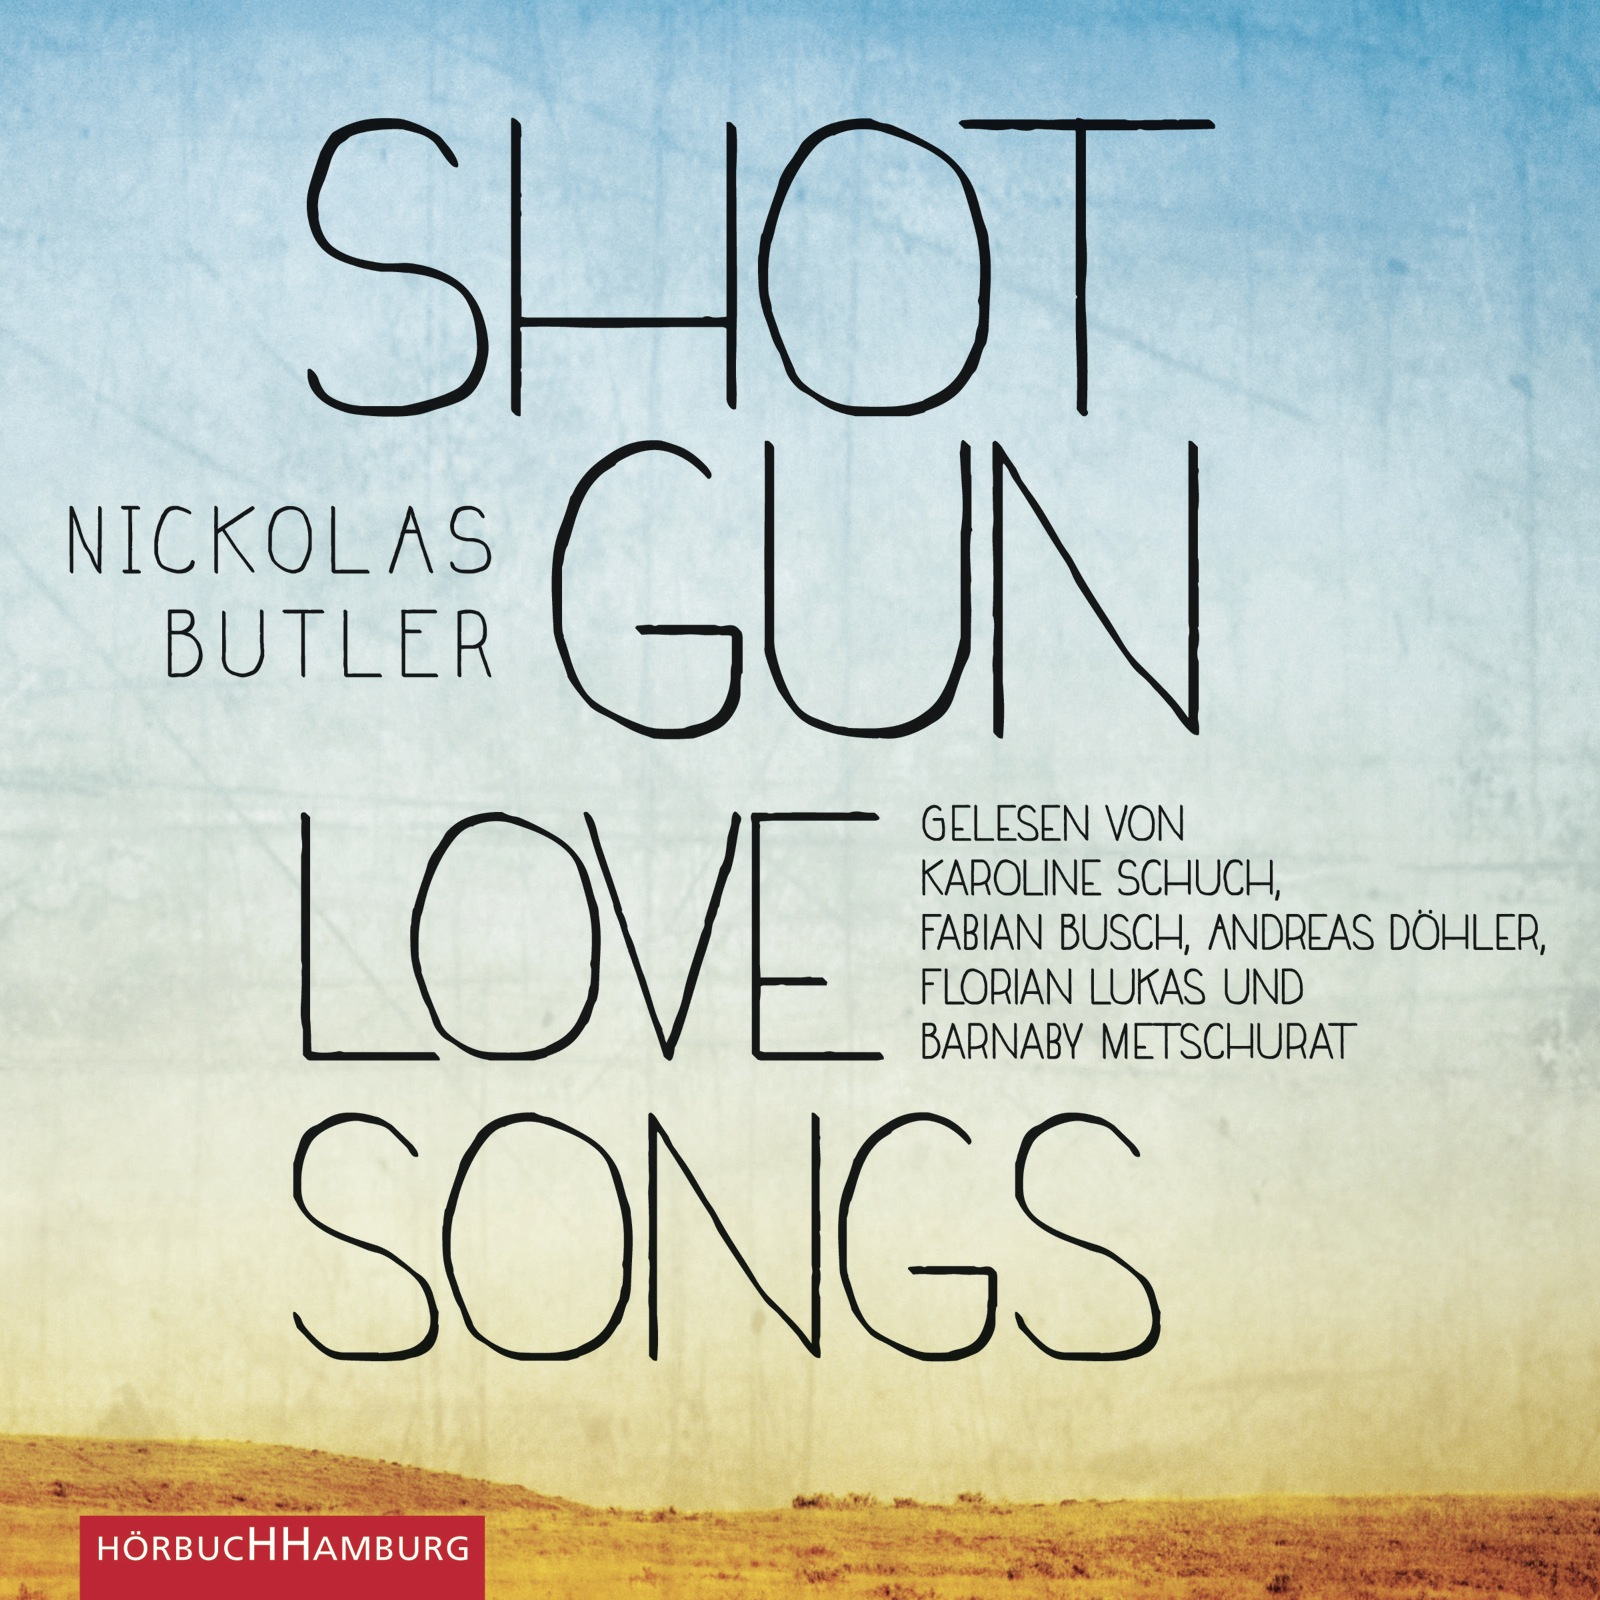 Shotgun Lovesongs - Nickolas Butler [6 Audio CDs]